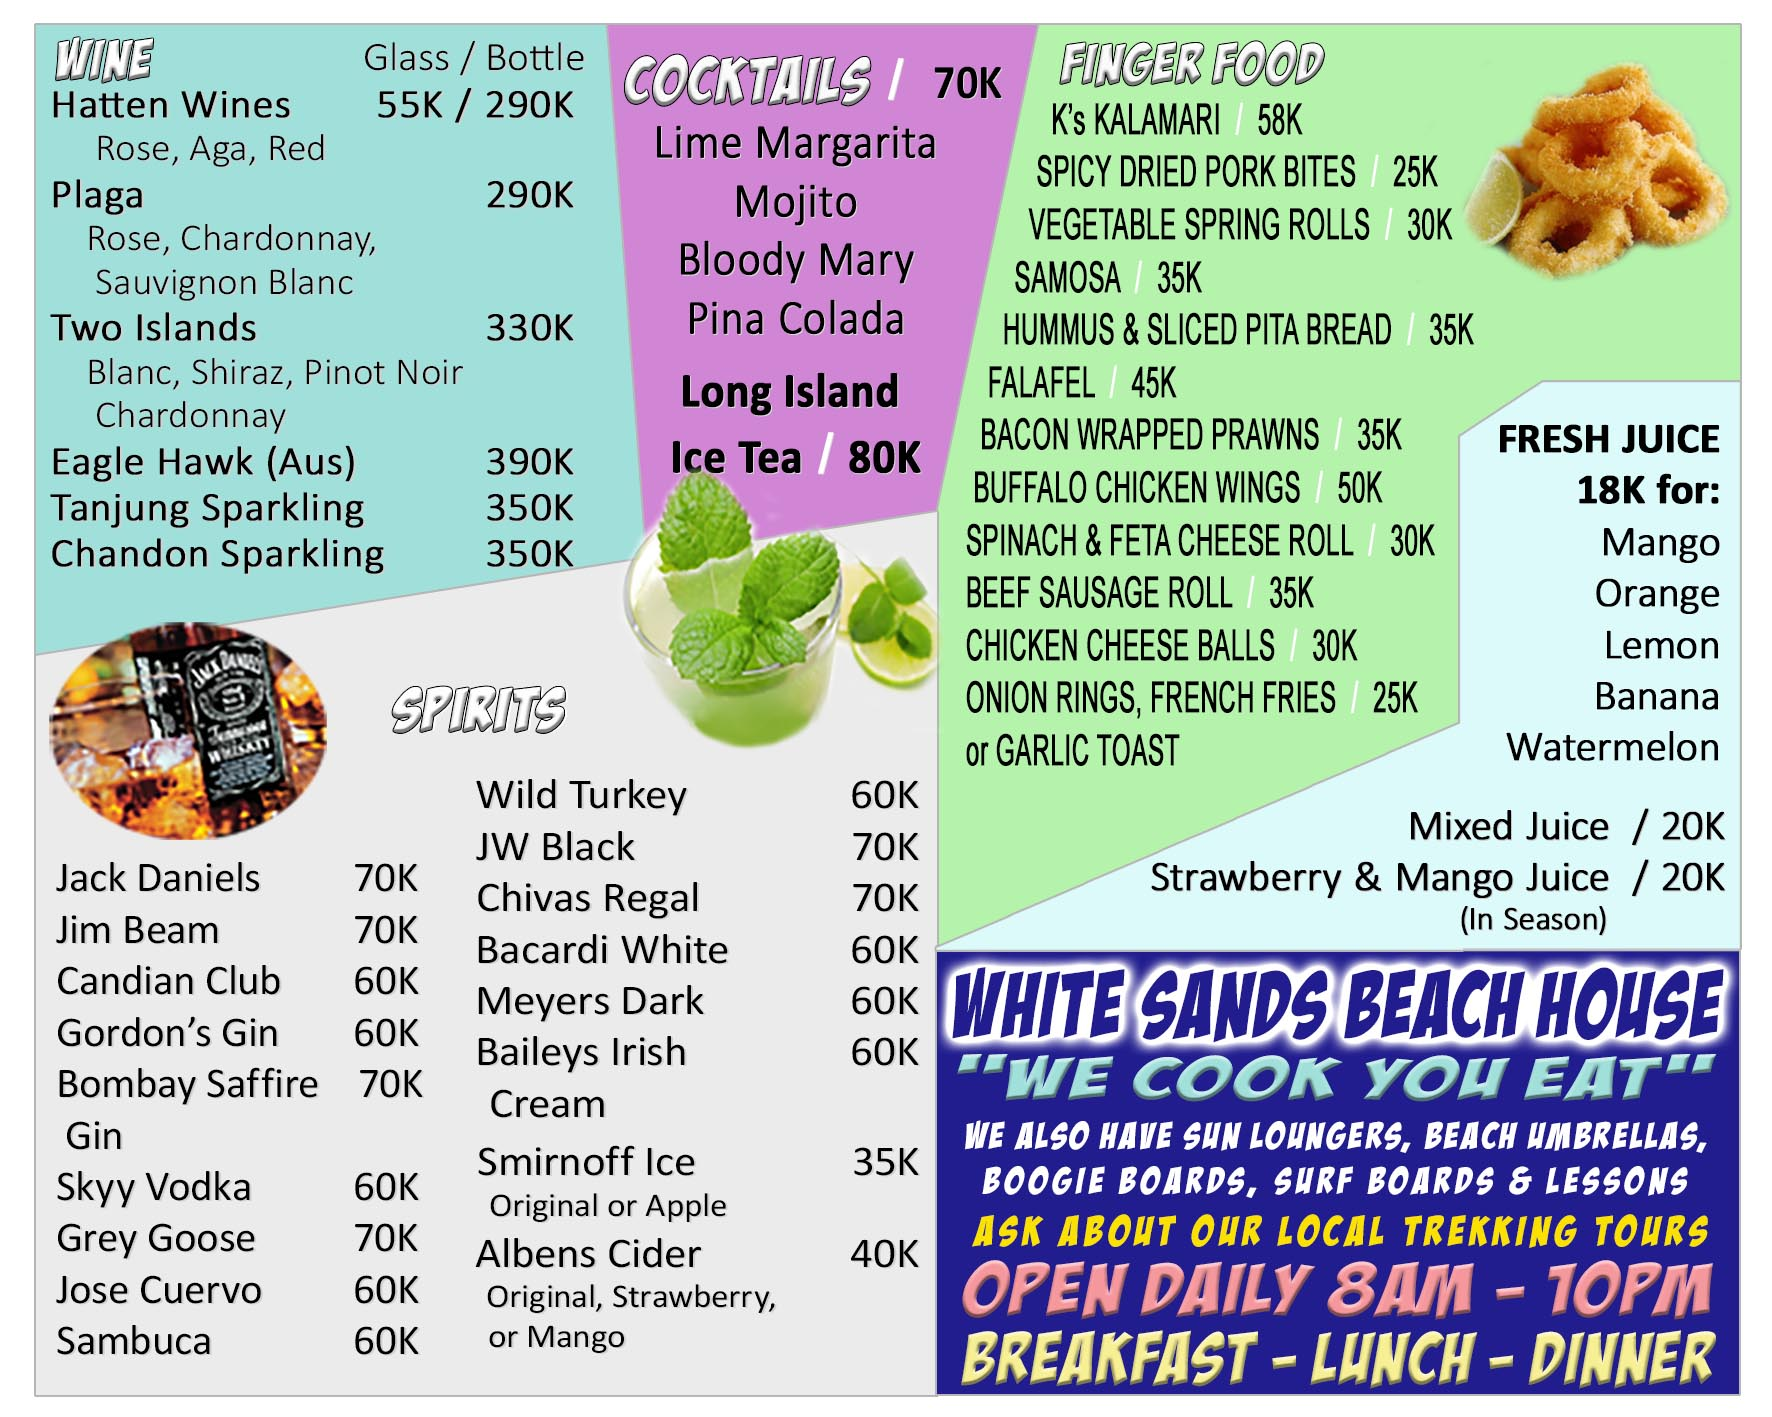 White Sands Beach House Jimbaran Beach Drink Menu